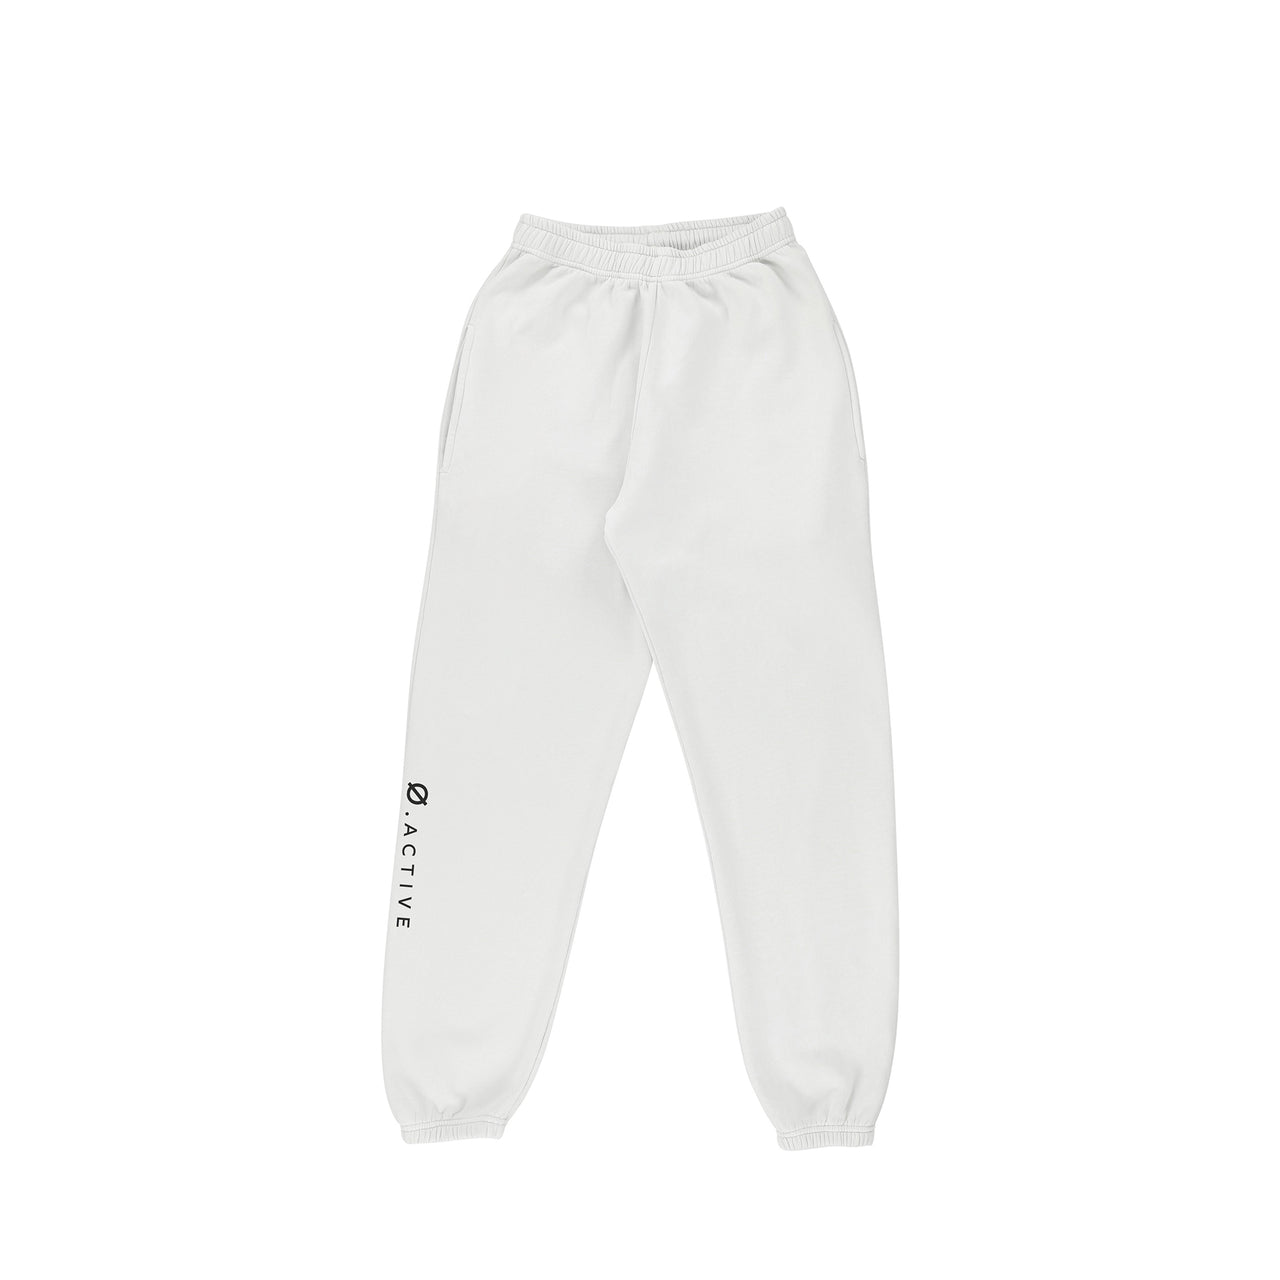 DØTCH x THE BRICK SWEATPANTS - CREAM